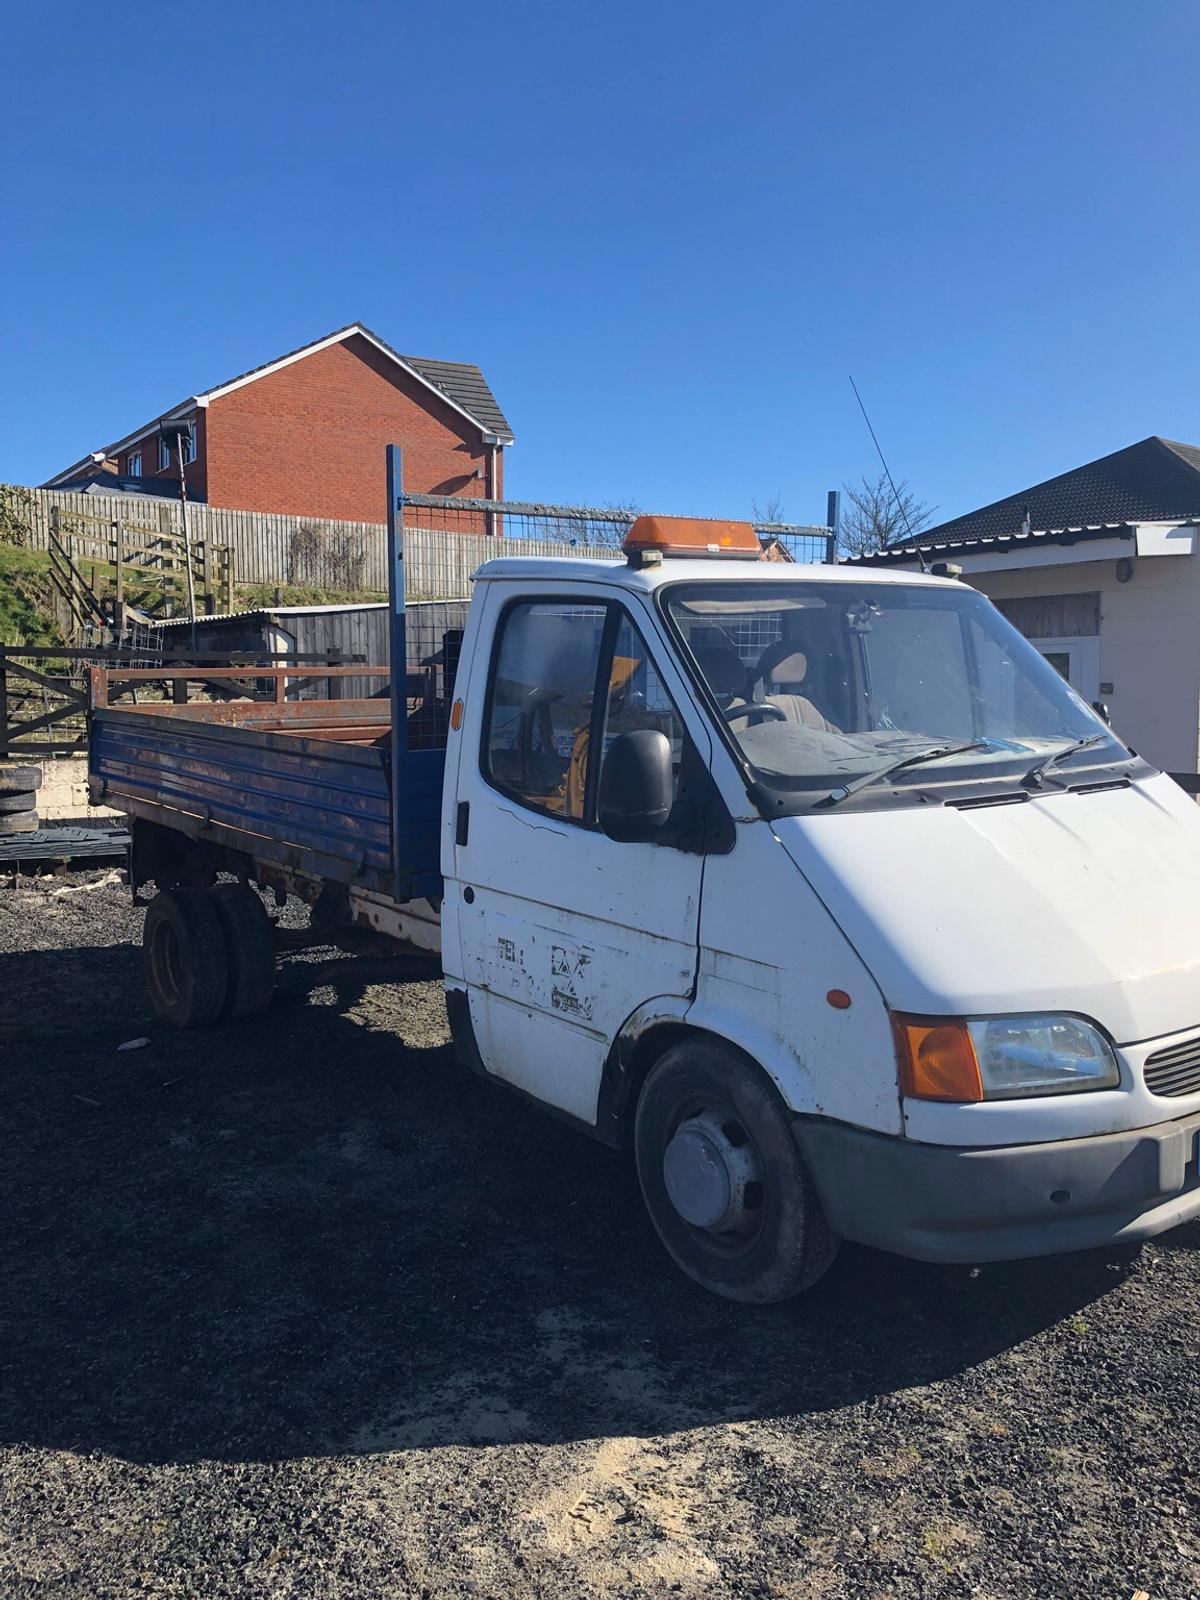 dcfd7ed7ed Ford Transit Tipper Truck in East Murton for £250.00 for sale - Shpock